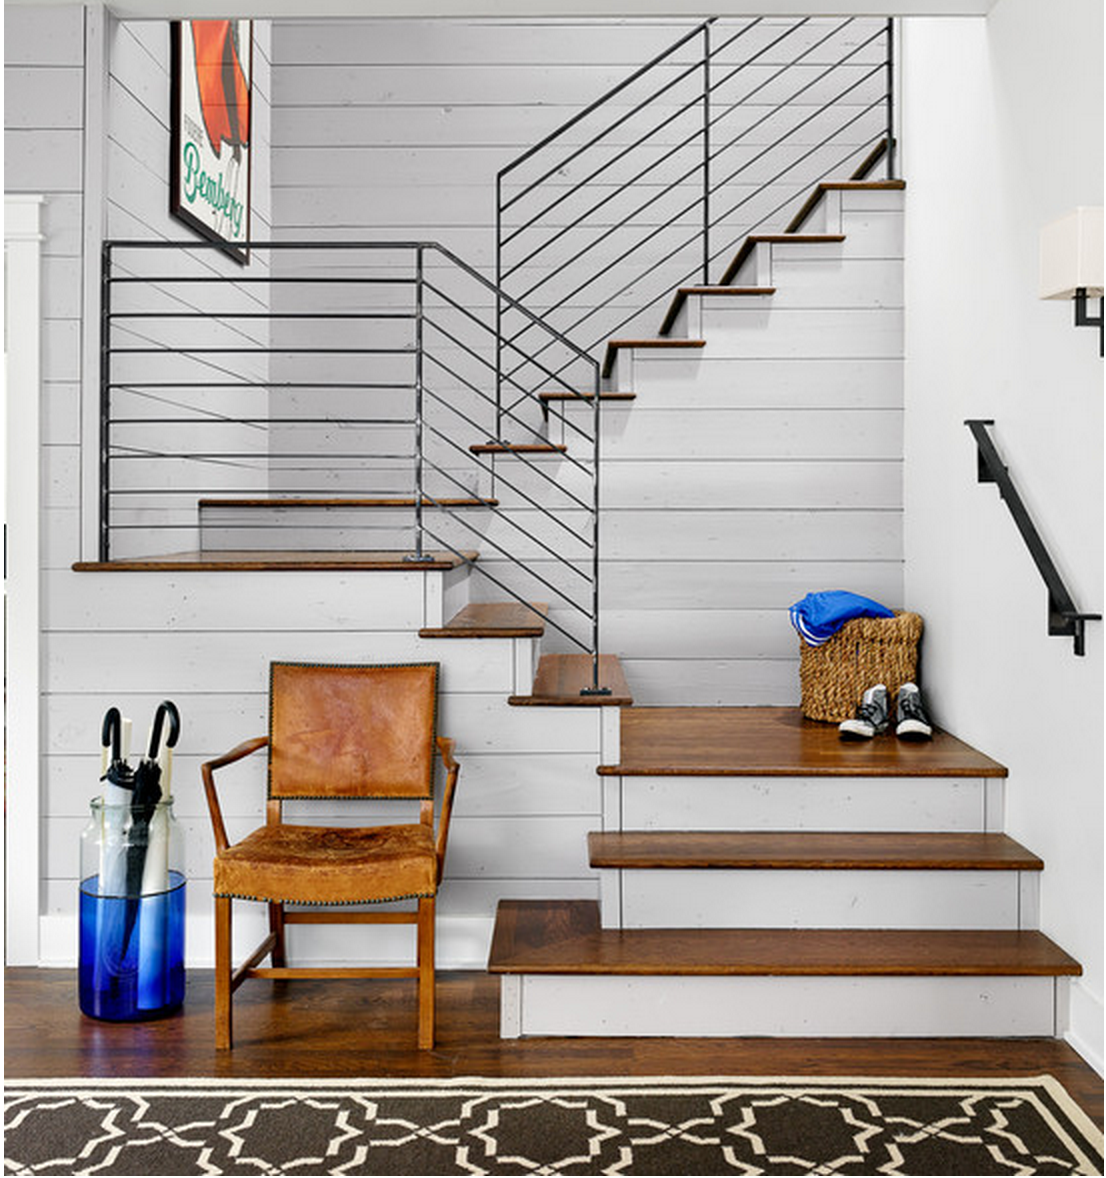 Best Love The Wood Steps And More Modern Look With The Iron 400 x 300